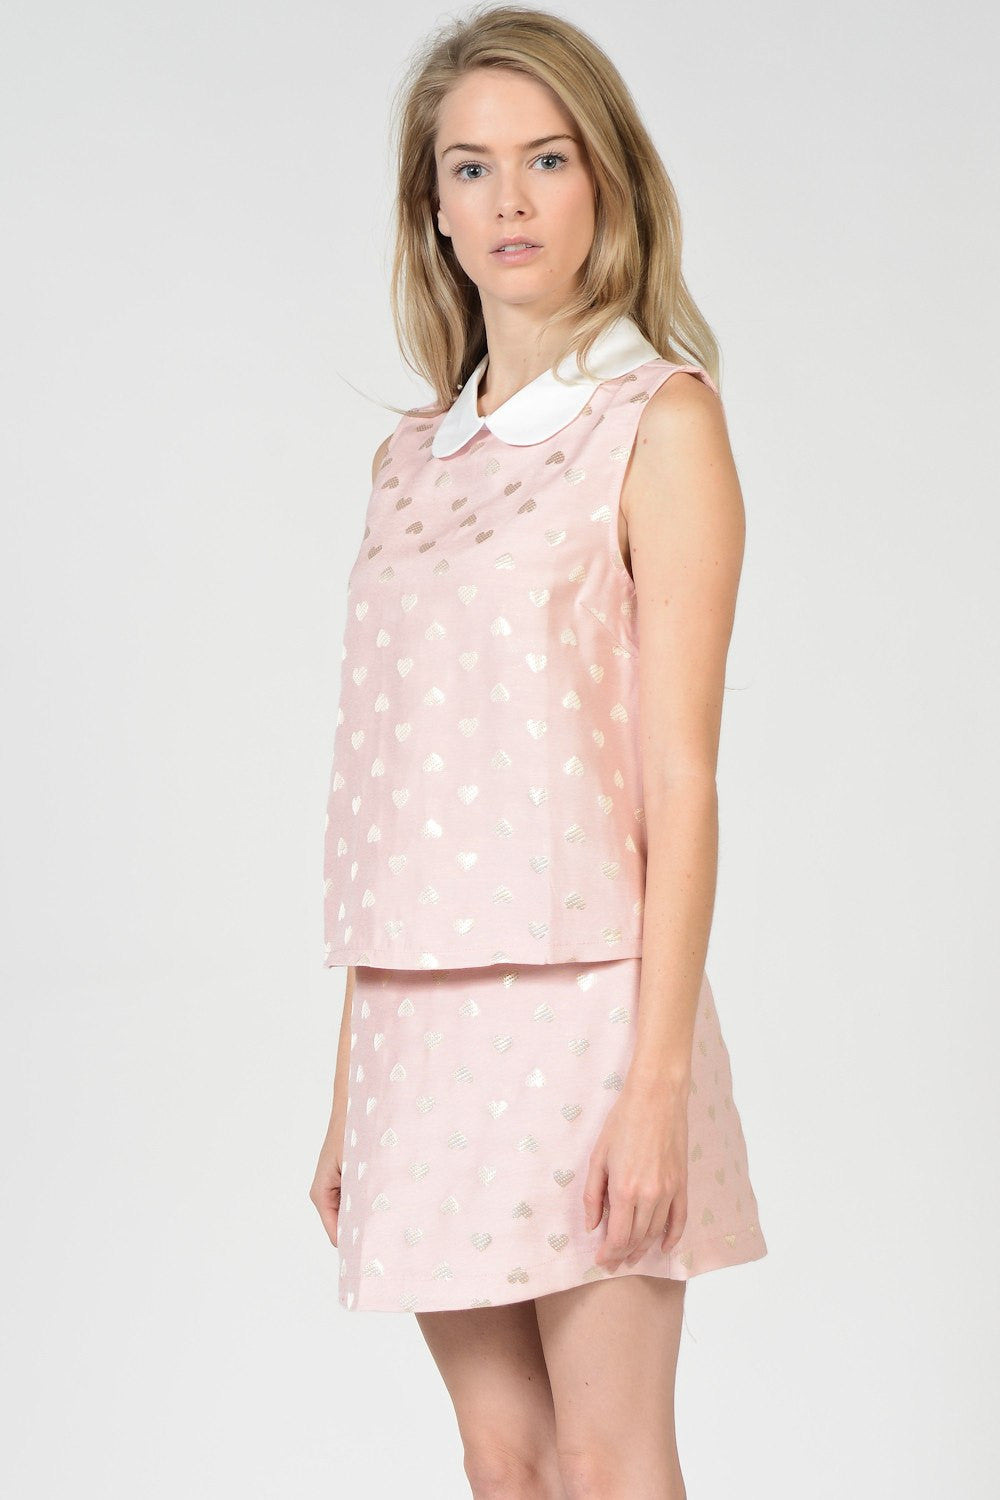 Sweet Hearts Sleeveless Collared Tops